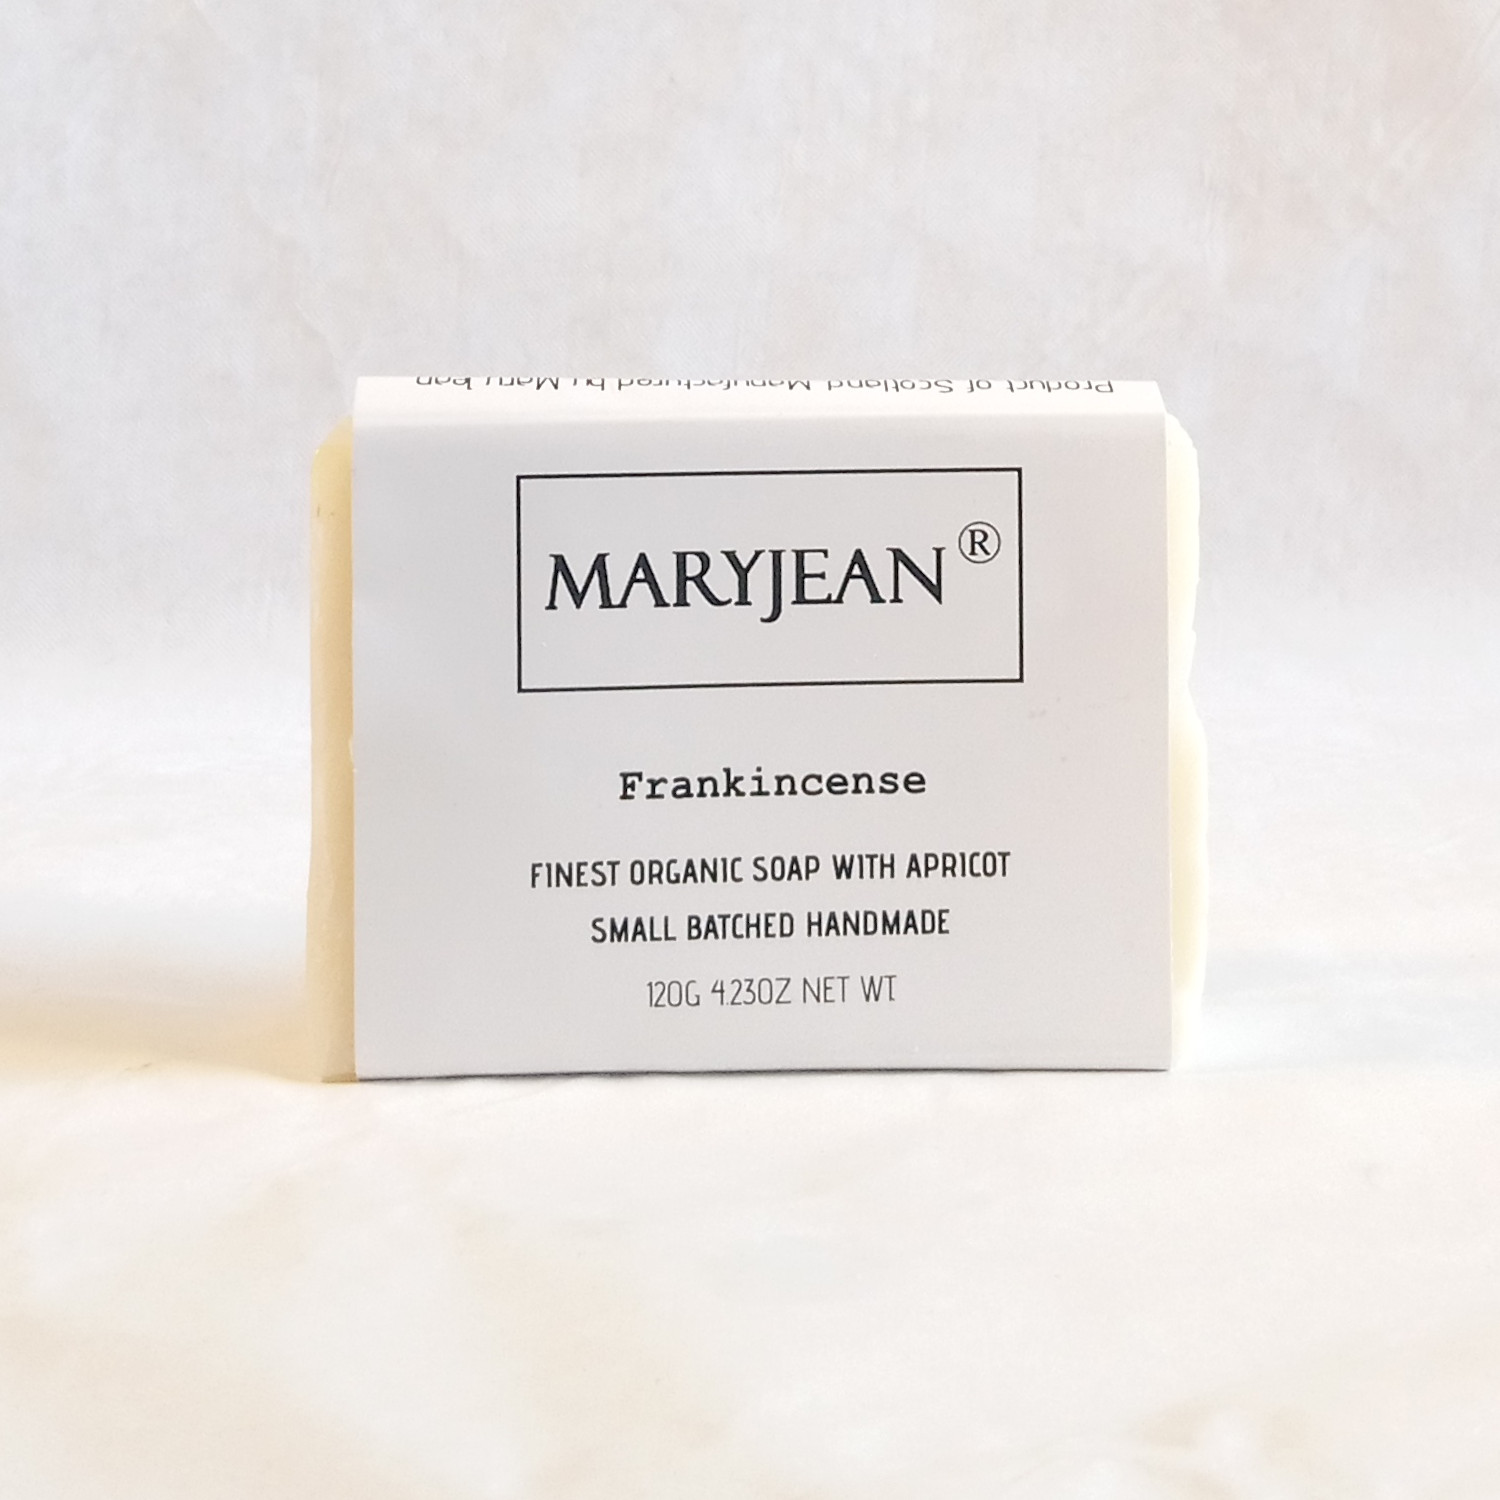 Best skin care soap bar for sun and environment damaged dry skin conditions use daily for best results Organic Scottish Frankincense Soap Handmade With Apricot